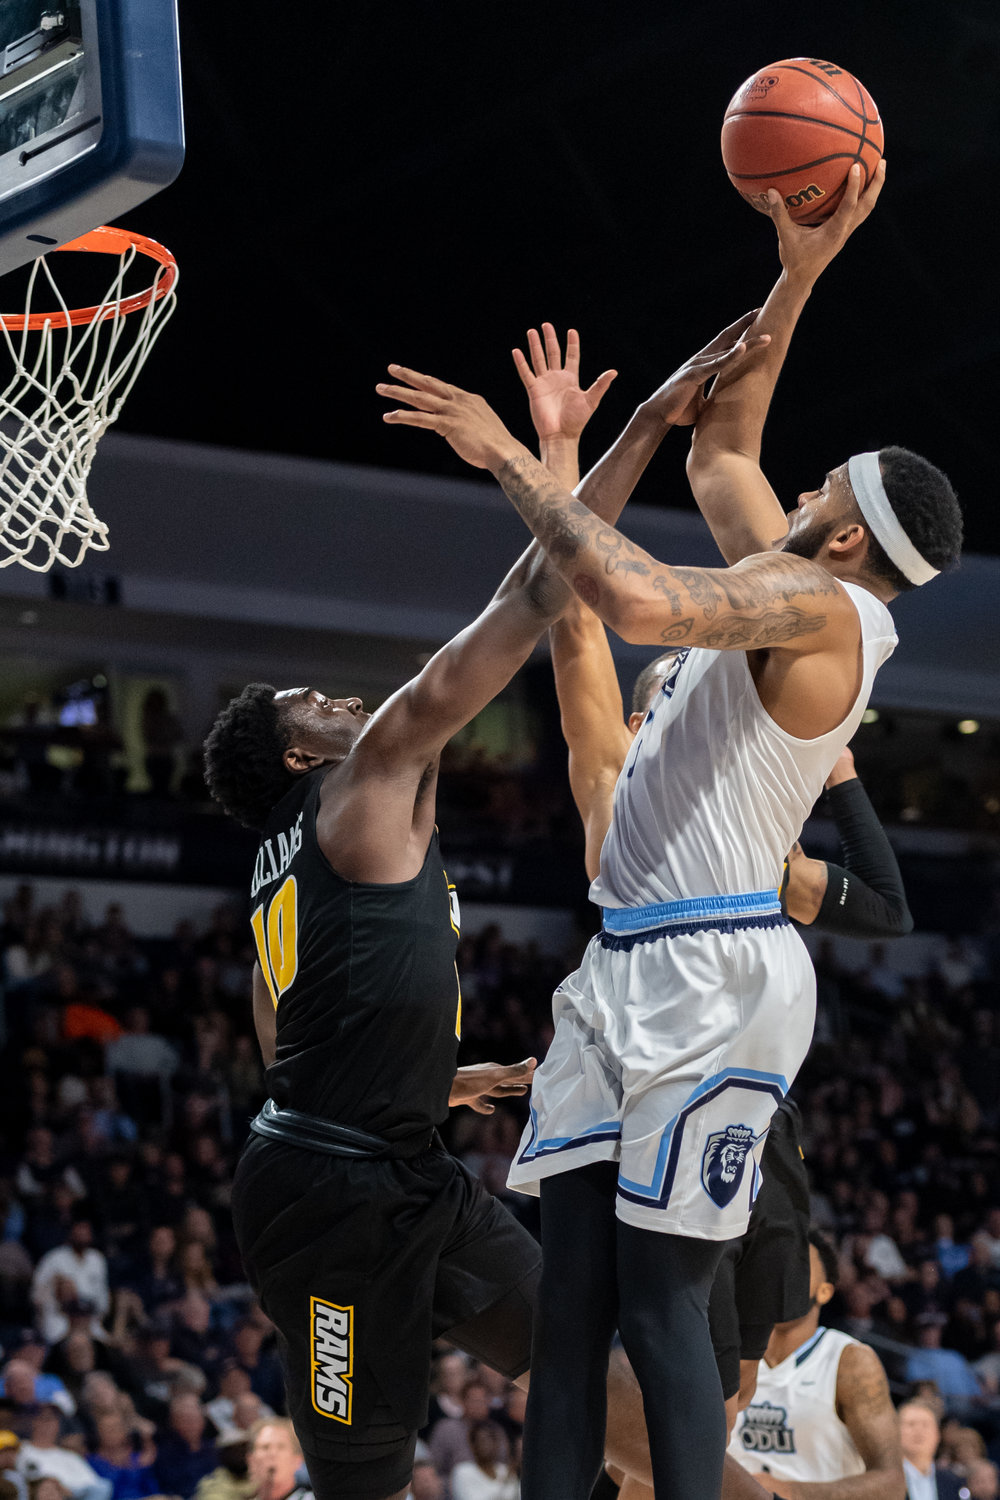 Old Dominion Monarchs guard B.J. Stith (3) goes up for a shot under pressure from Virginia Commonwealth Rams guard Vince Williams (10) during the Wednesday, November 28, 2018 game held at Old Dominion University in Norfolk. Old Dominion defeated VCU 62 to 52.